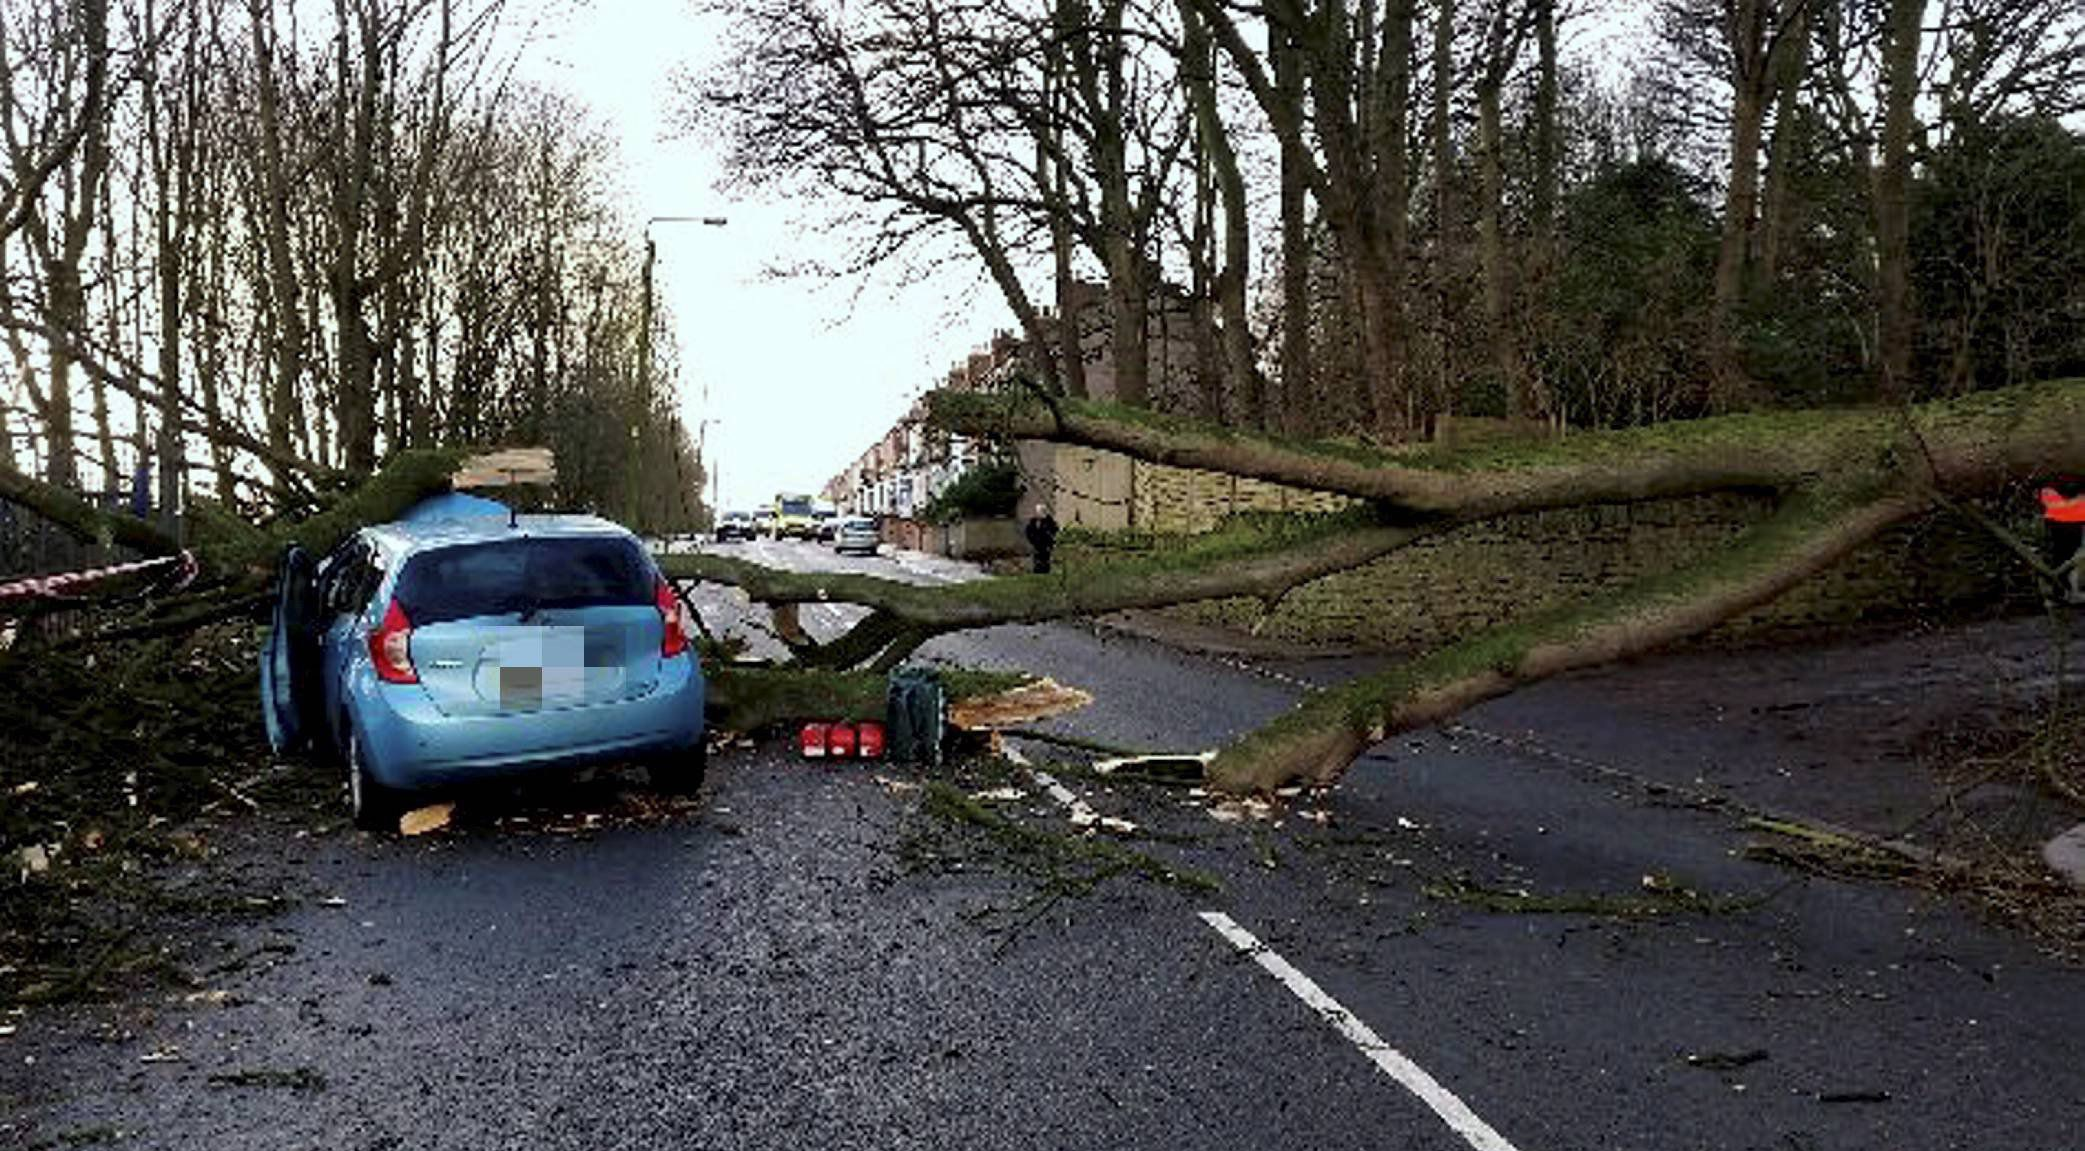 Dated: 31/01/2016 The scene of destruction after a tree fell onto a vehicle in Ferryhill Station, County Durham on Friday, trapping Susan McKay and Terrilee Hope inside as members of the public took pictures of them until they were rescued by firefighters, after Storm Gertrude wreaked havoc across the north. See story by North News